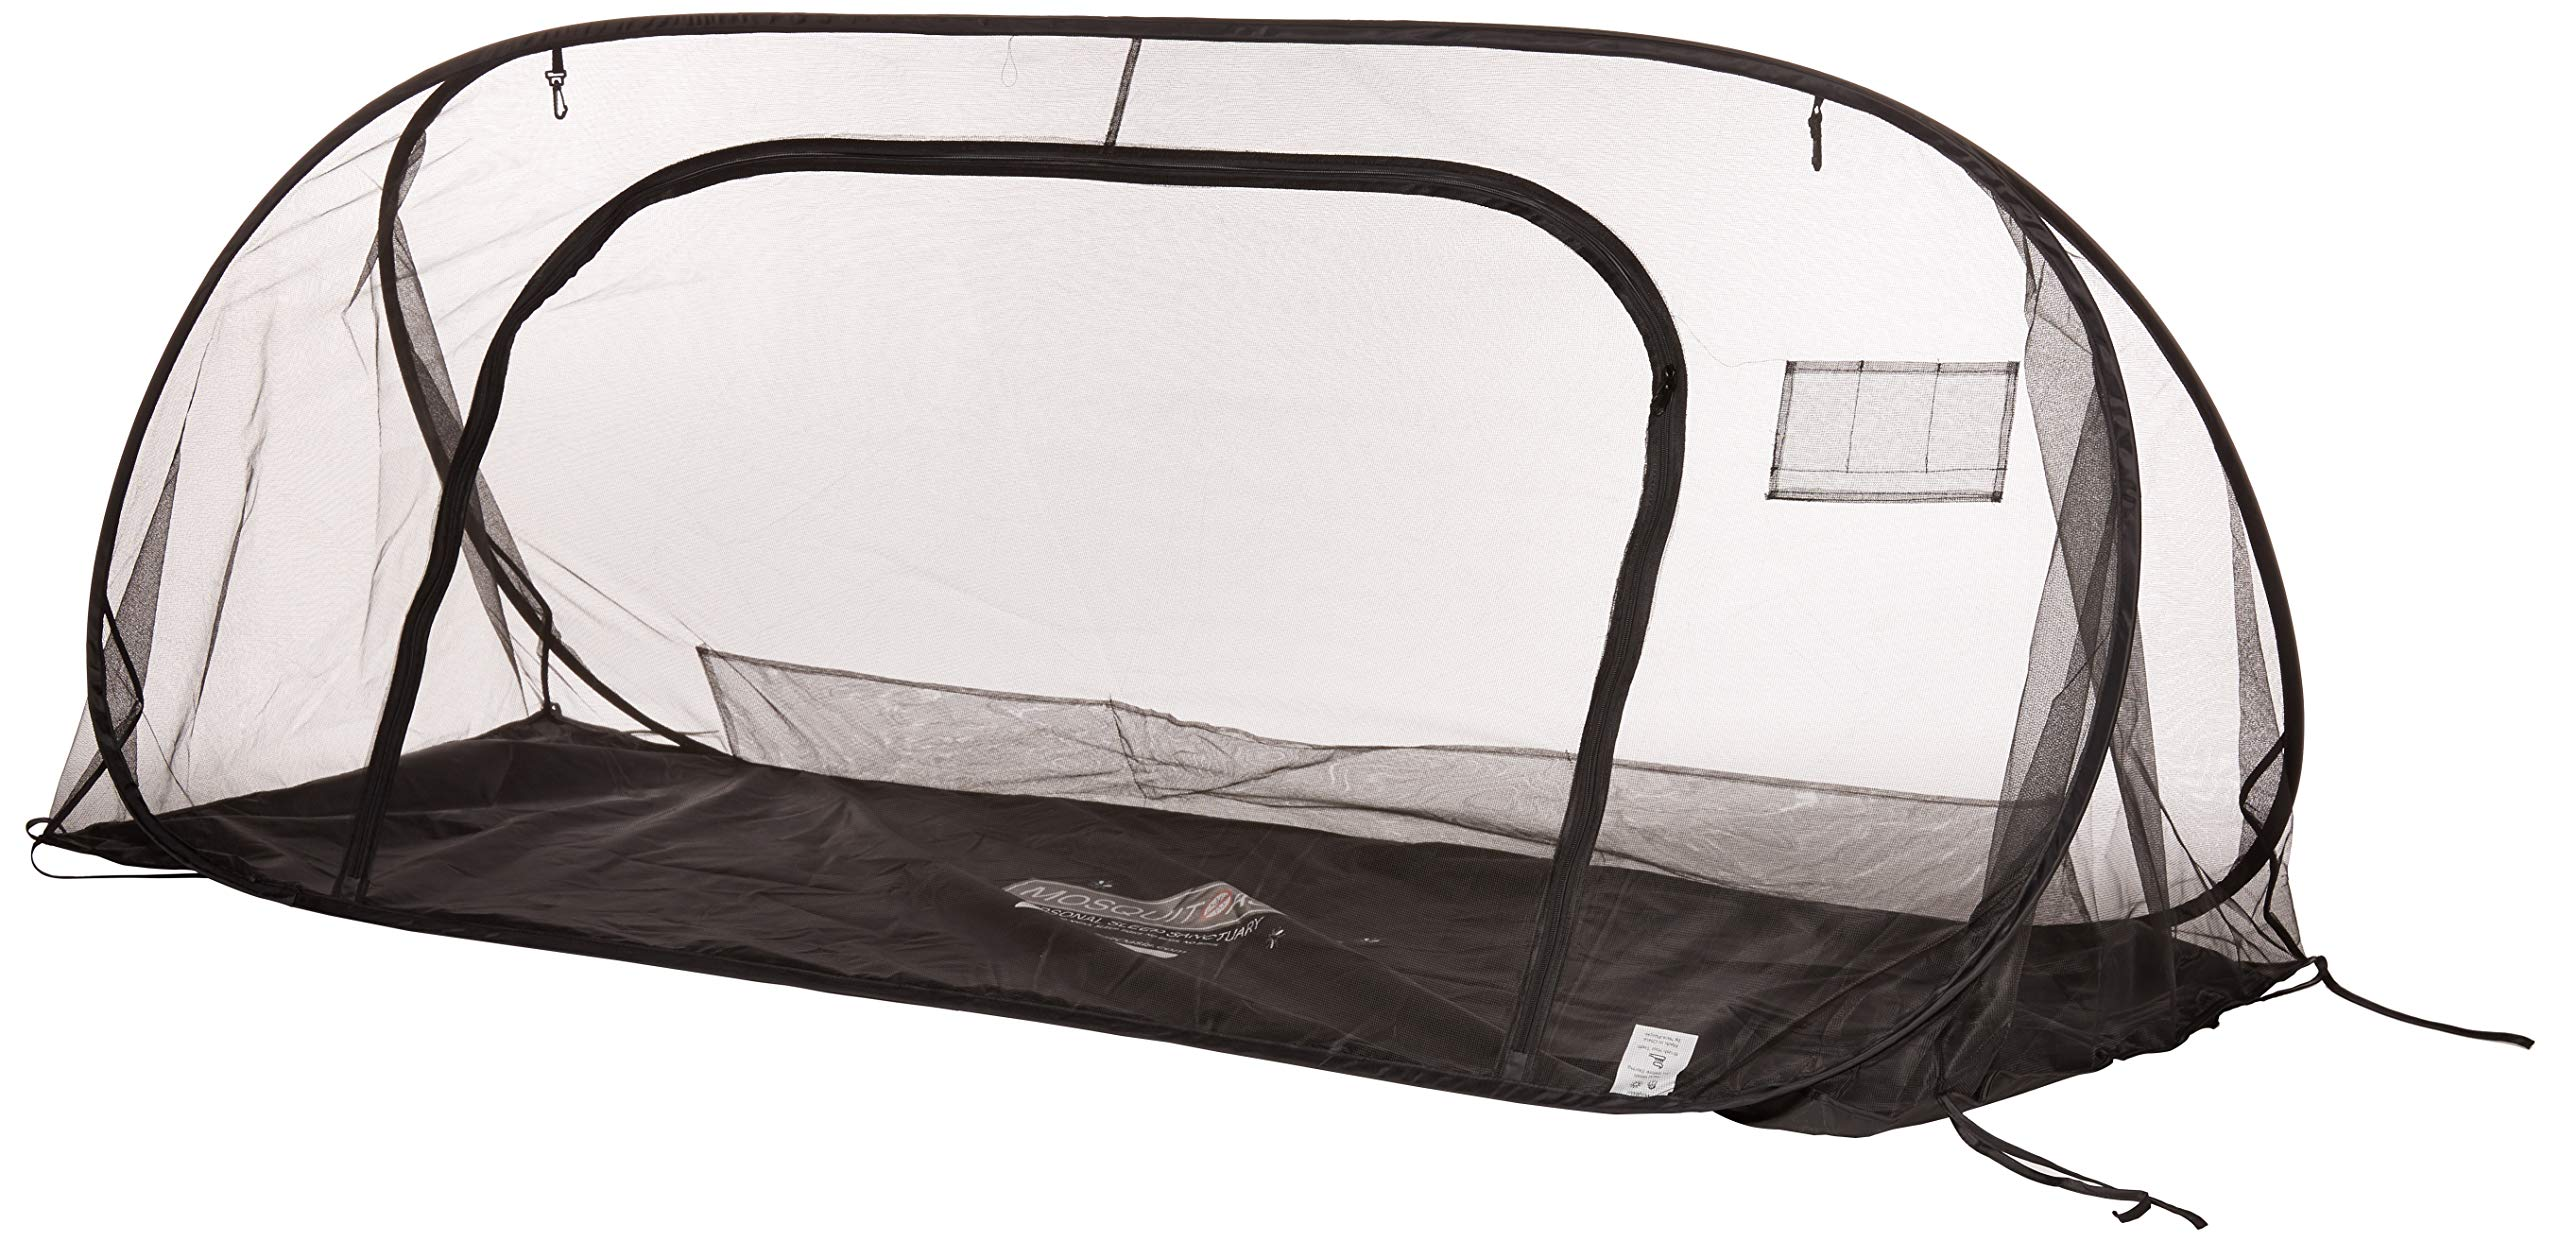 MosquitOasis Pop-Up Mosquito Net Tent by MosquitOasis